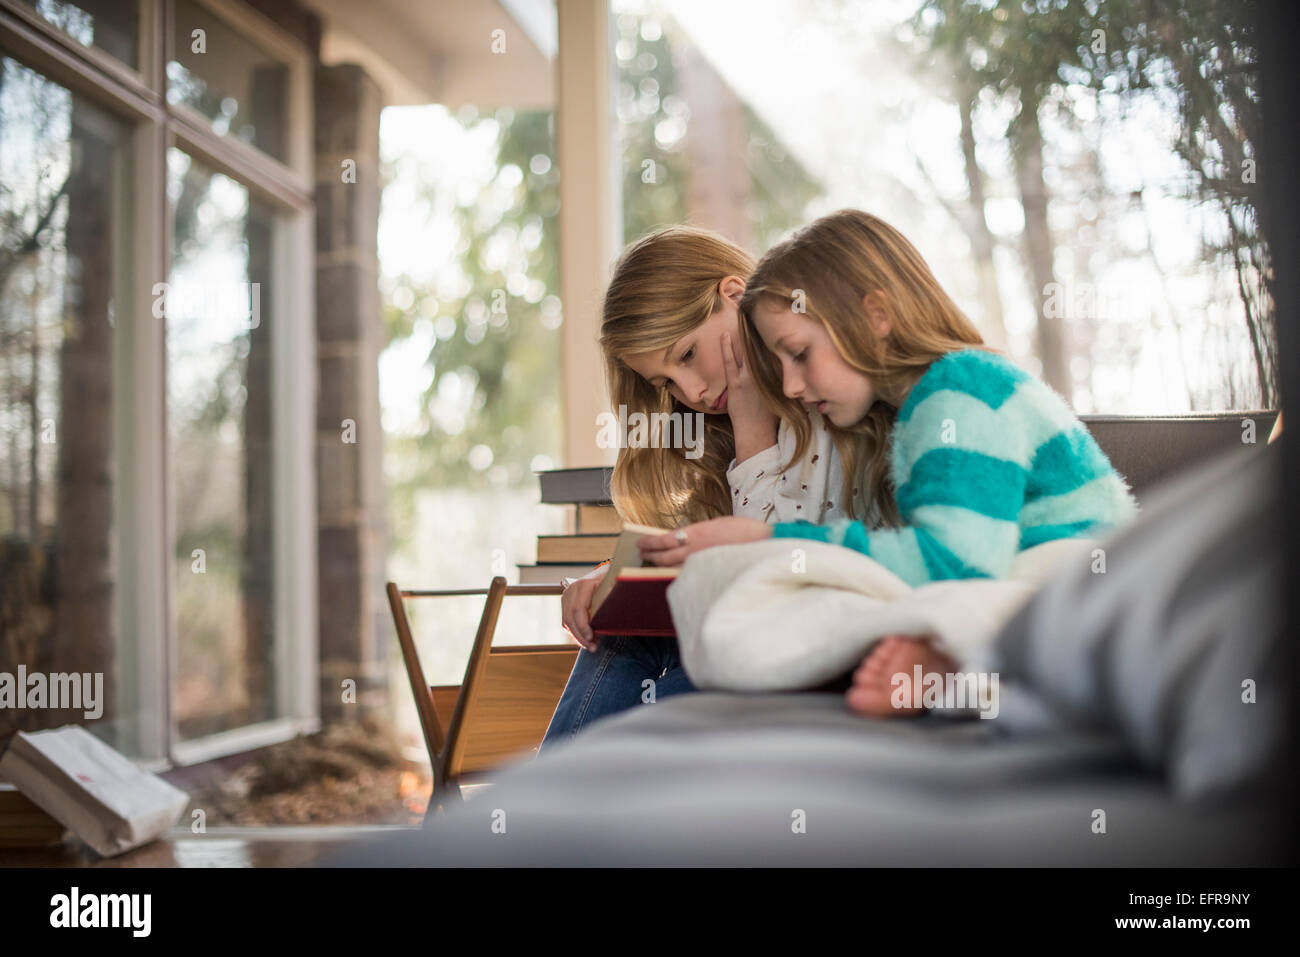 Two girls sitting on a sofa, reading a book. - Stock Image